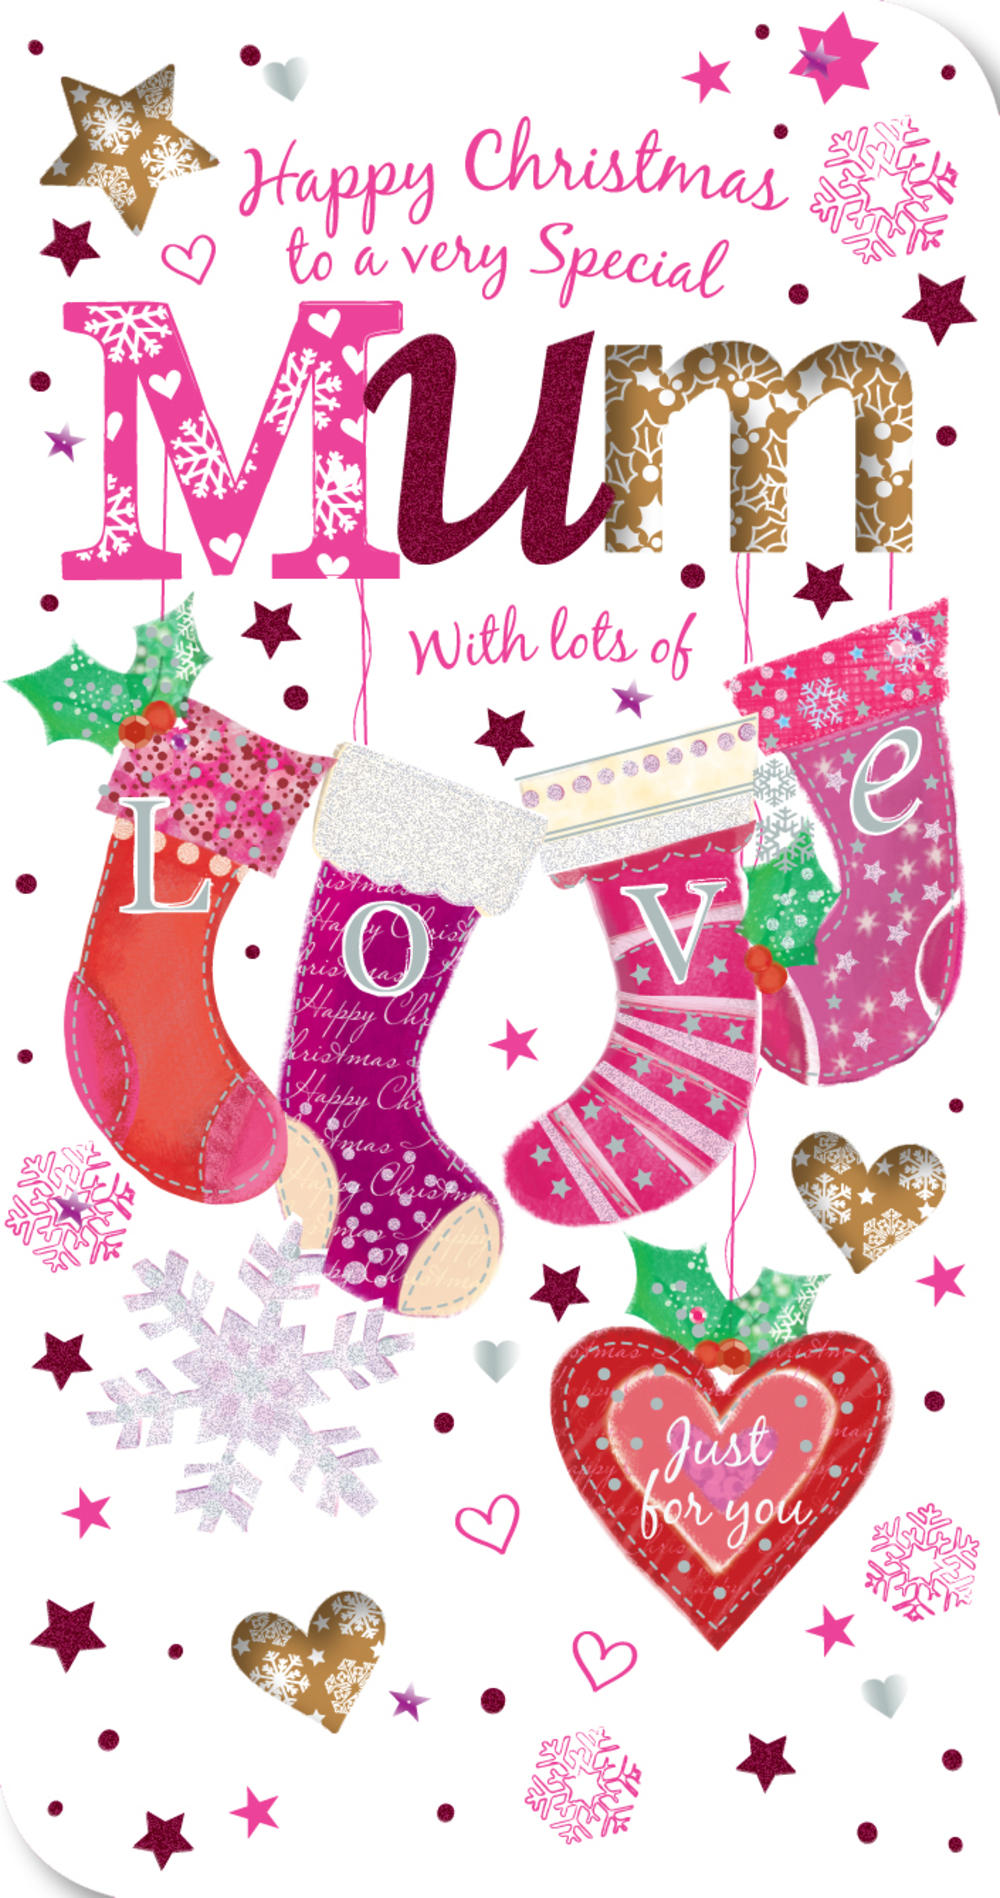 Special Mum Happy Christmas Greeting Card